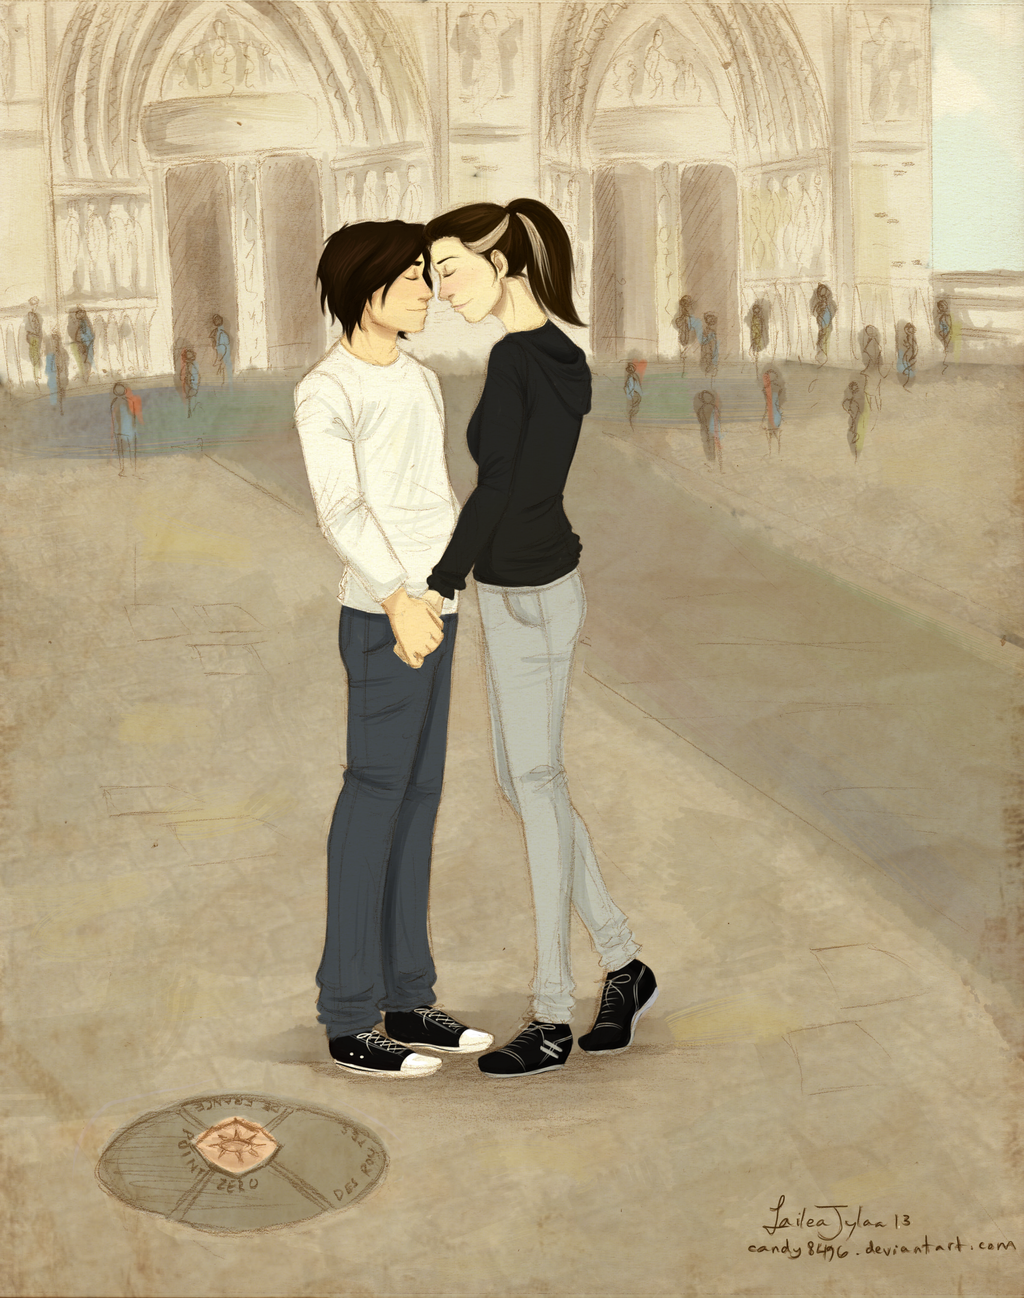 http://fc03.deviantart.net/fs71/i/2013/191/3/5/anna_and_the_french_kiss_by_candy8496-d6cwvba.png